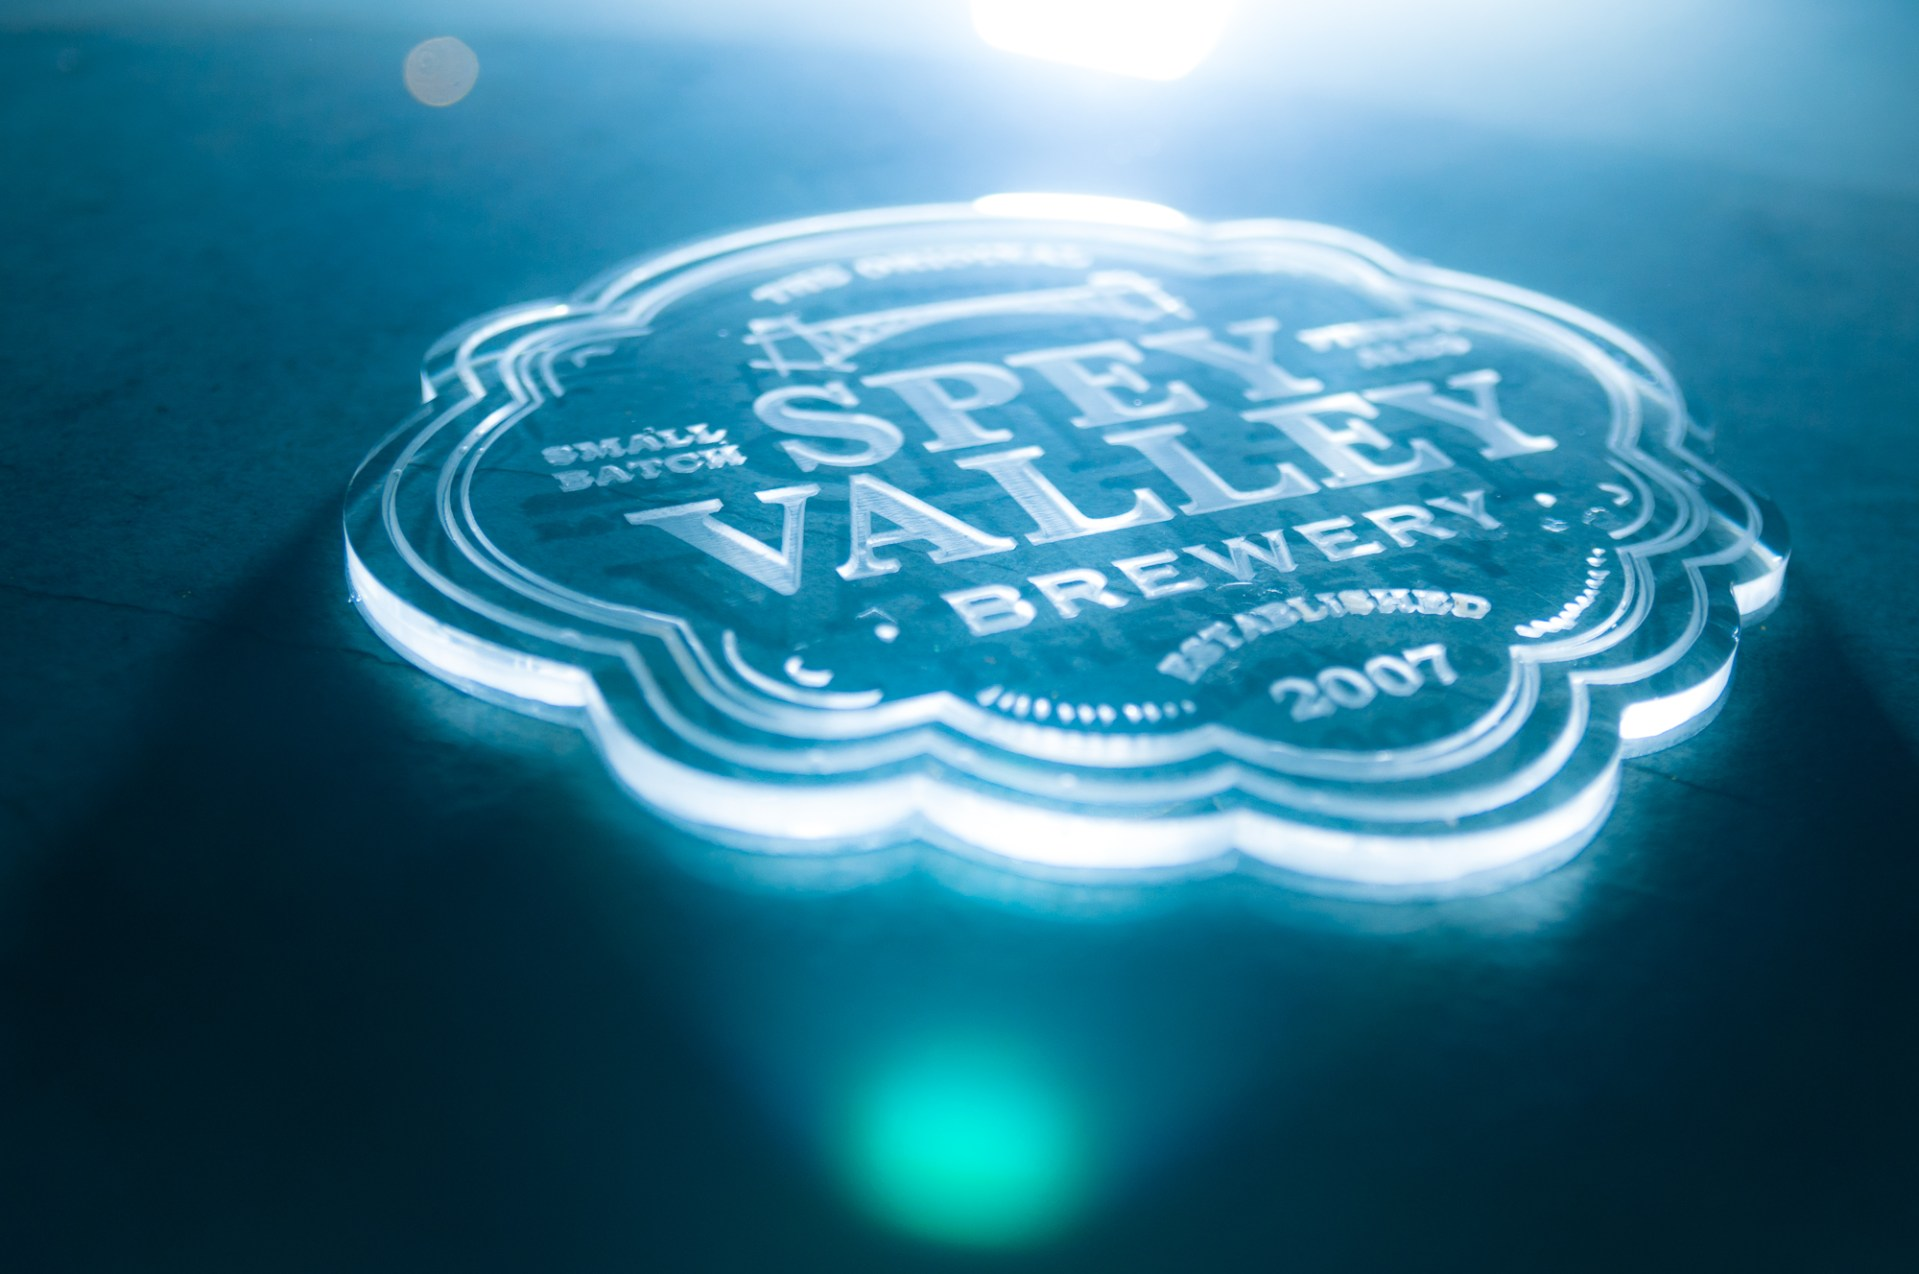 Spey Valley Brewery Logo